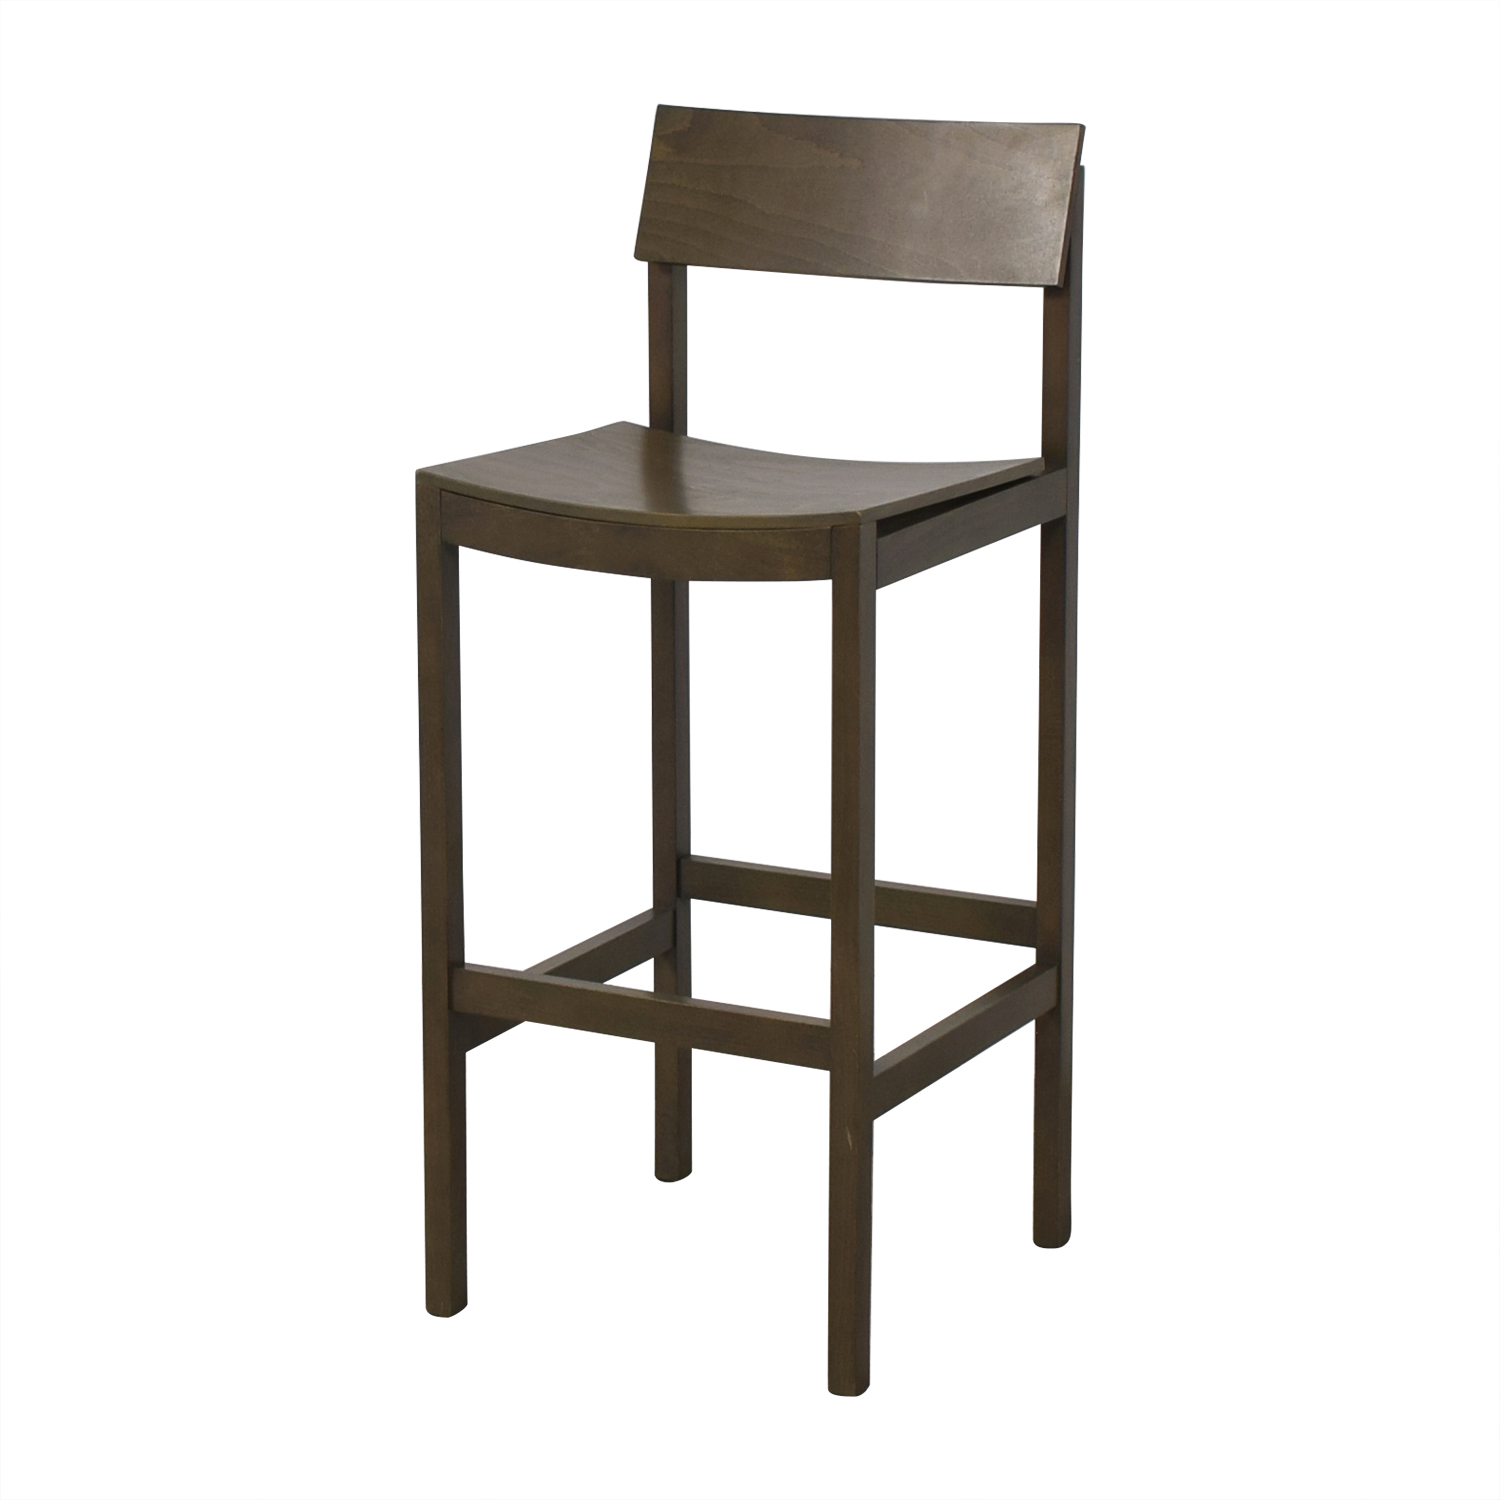 Awesome 66 Off Cb2 Cb2 Counter Stool Chairs Pabps2019 Chair Design Images Pabps2019Com